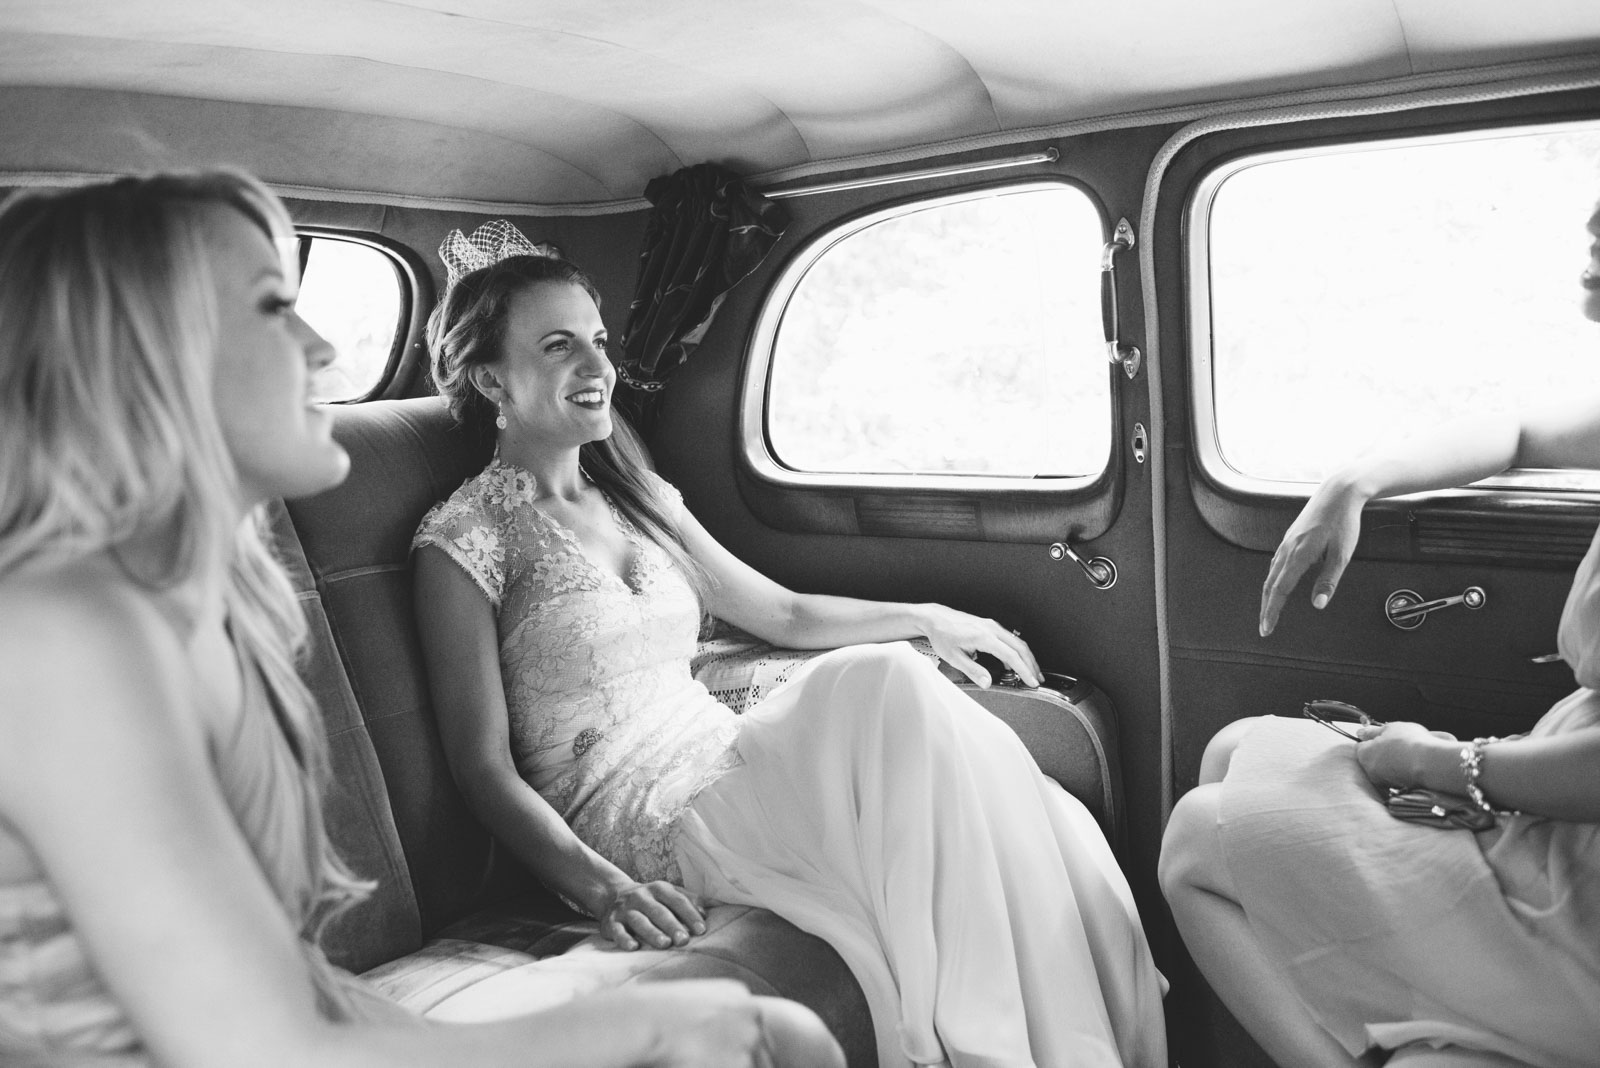 black and white candid of bride catching a ride in vintage car on the way to wedding ceremony